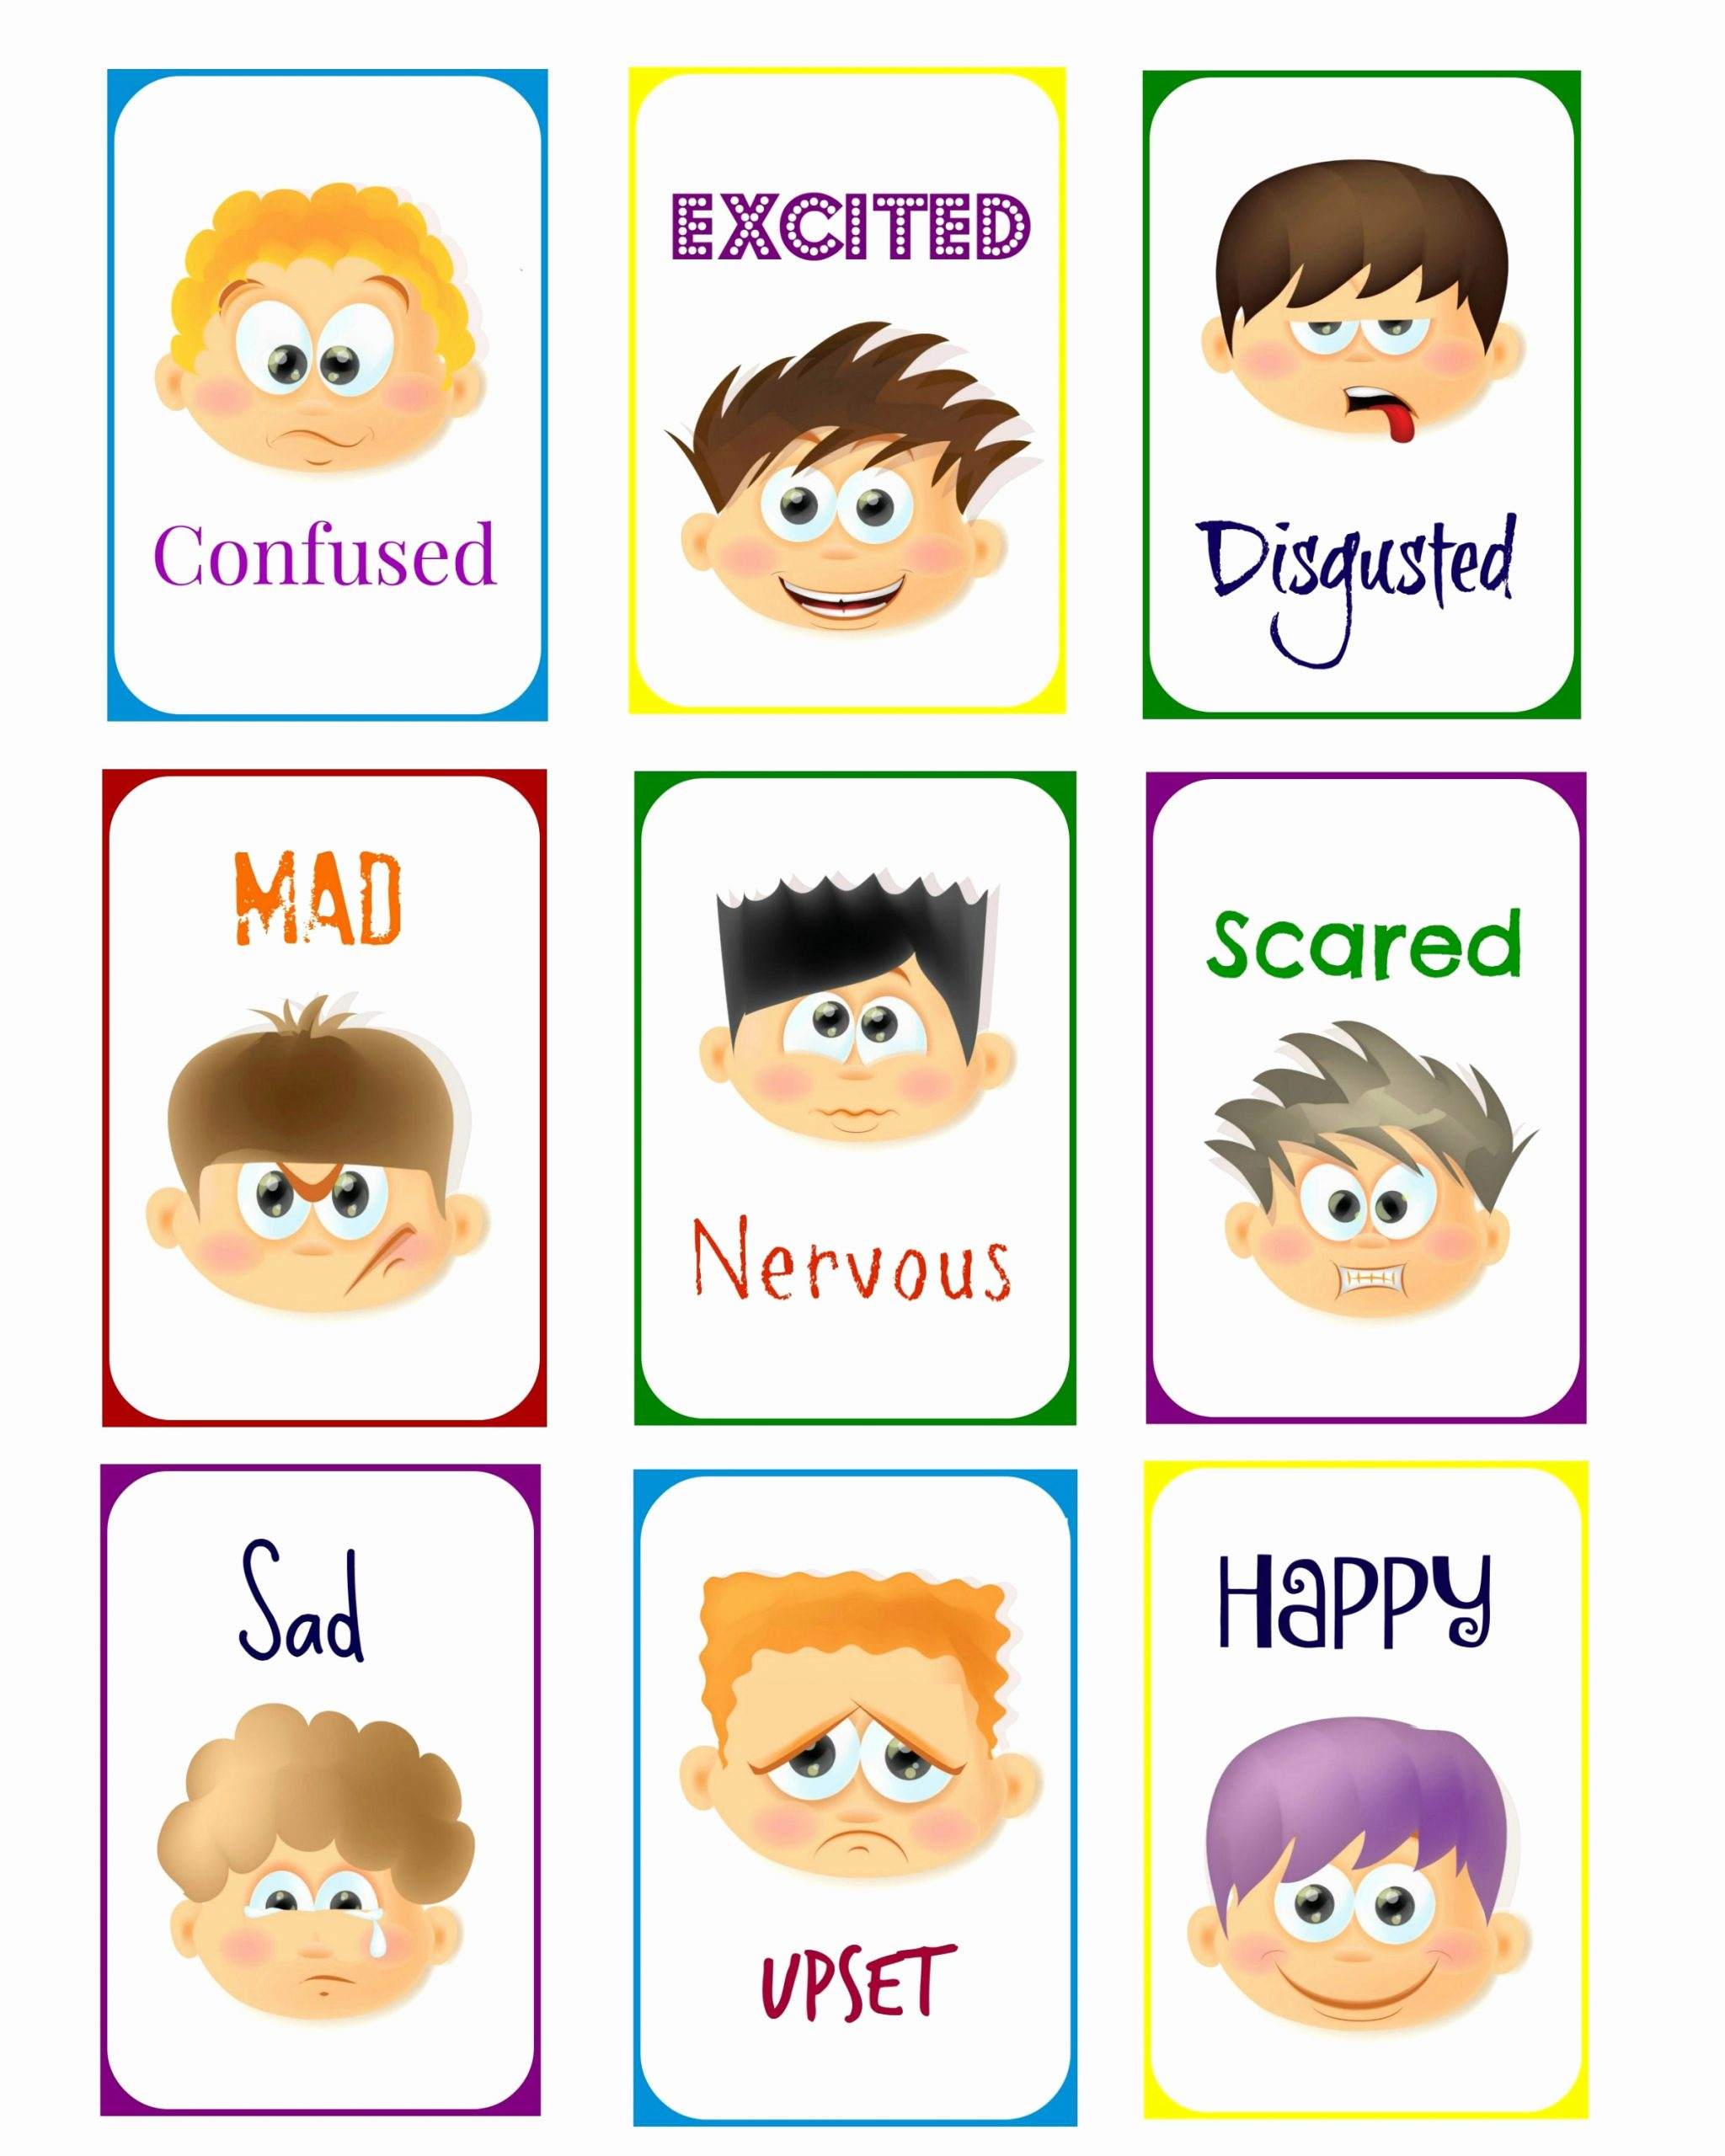 Emotions Worksheets for Preschoolers Inspirational Exclusive Content for Subscribers